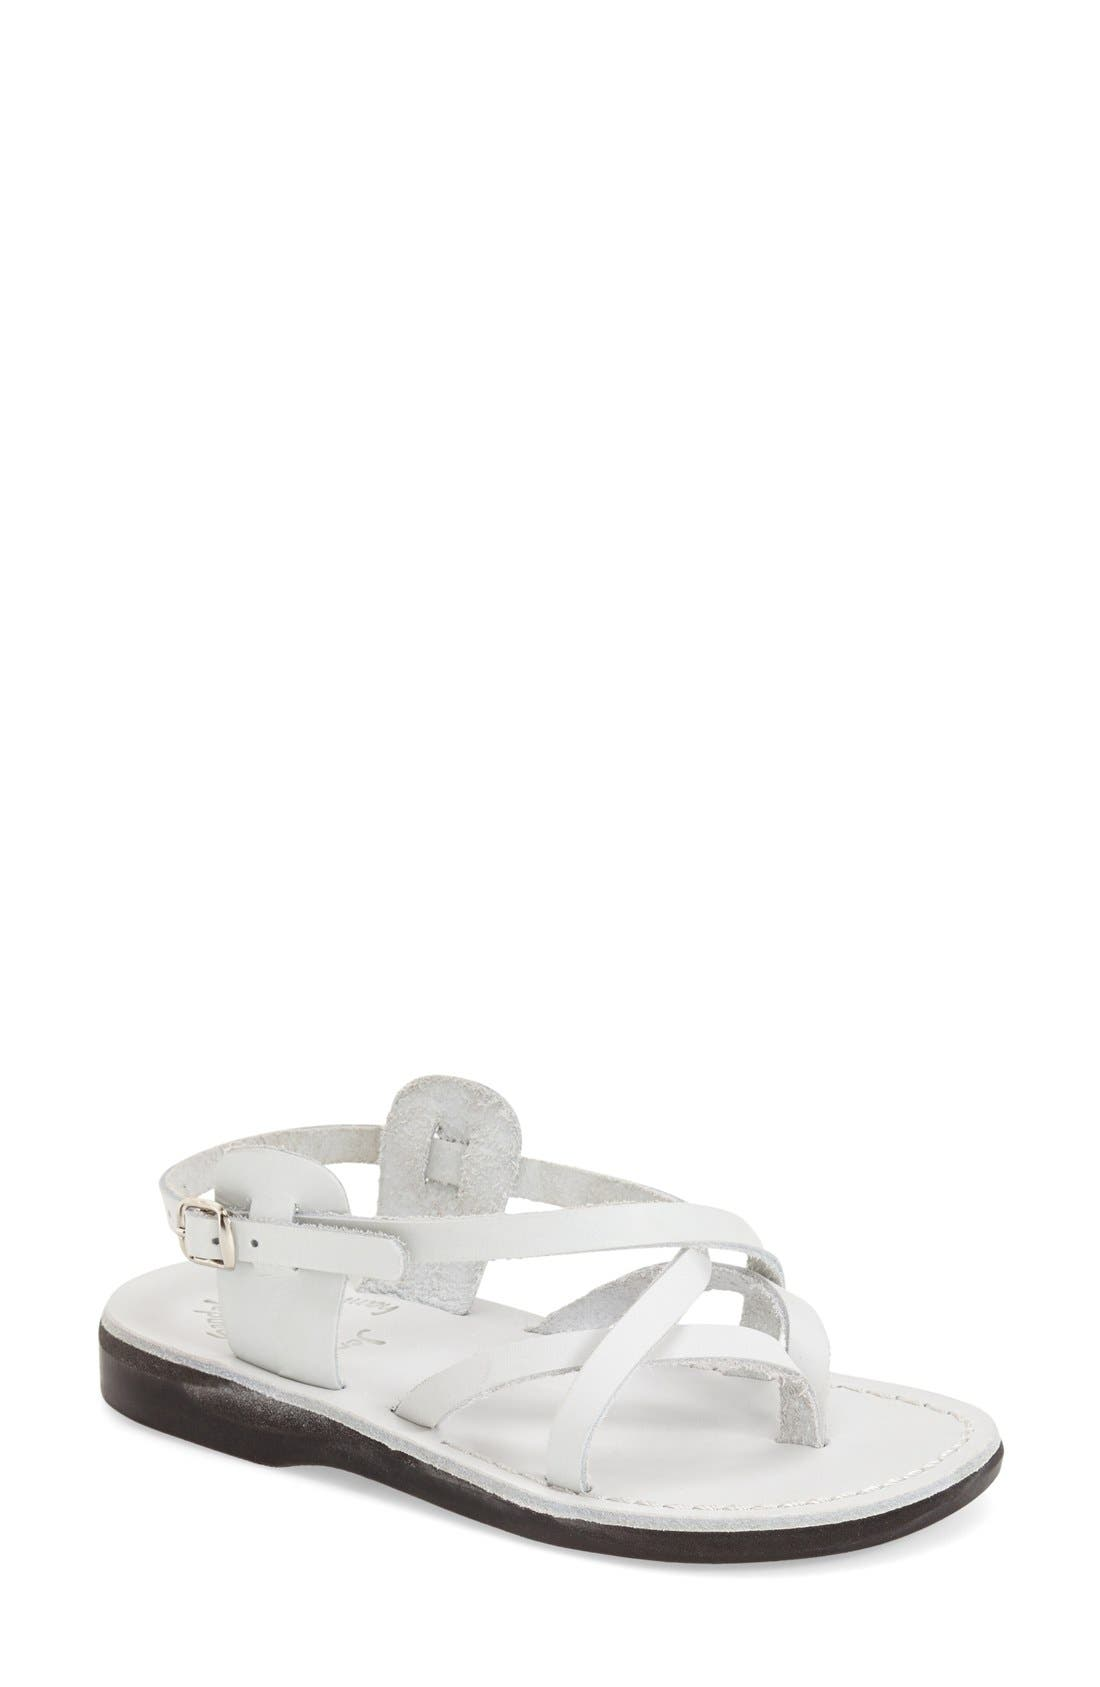 'Tamar' Strappy Sandal,                             Main thumbnail 1, color,                             White Leather